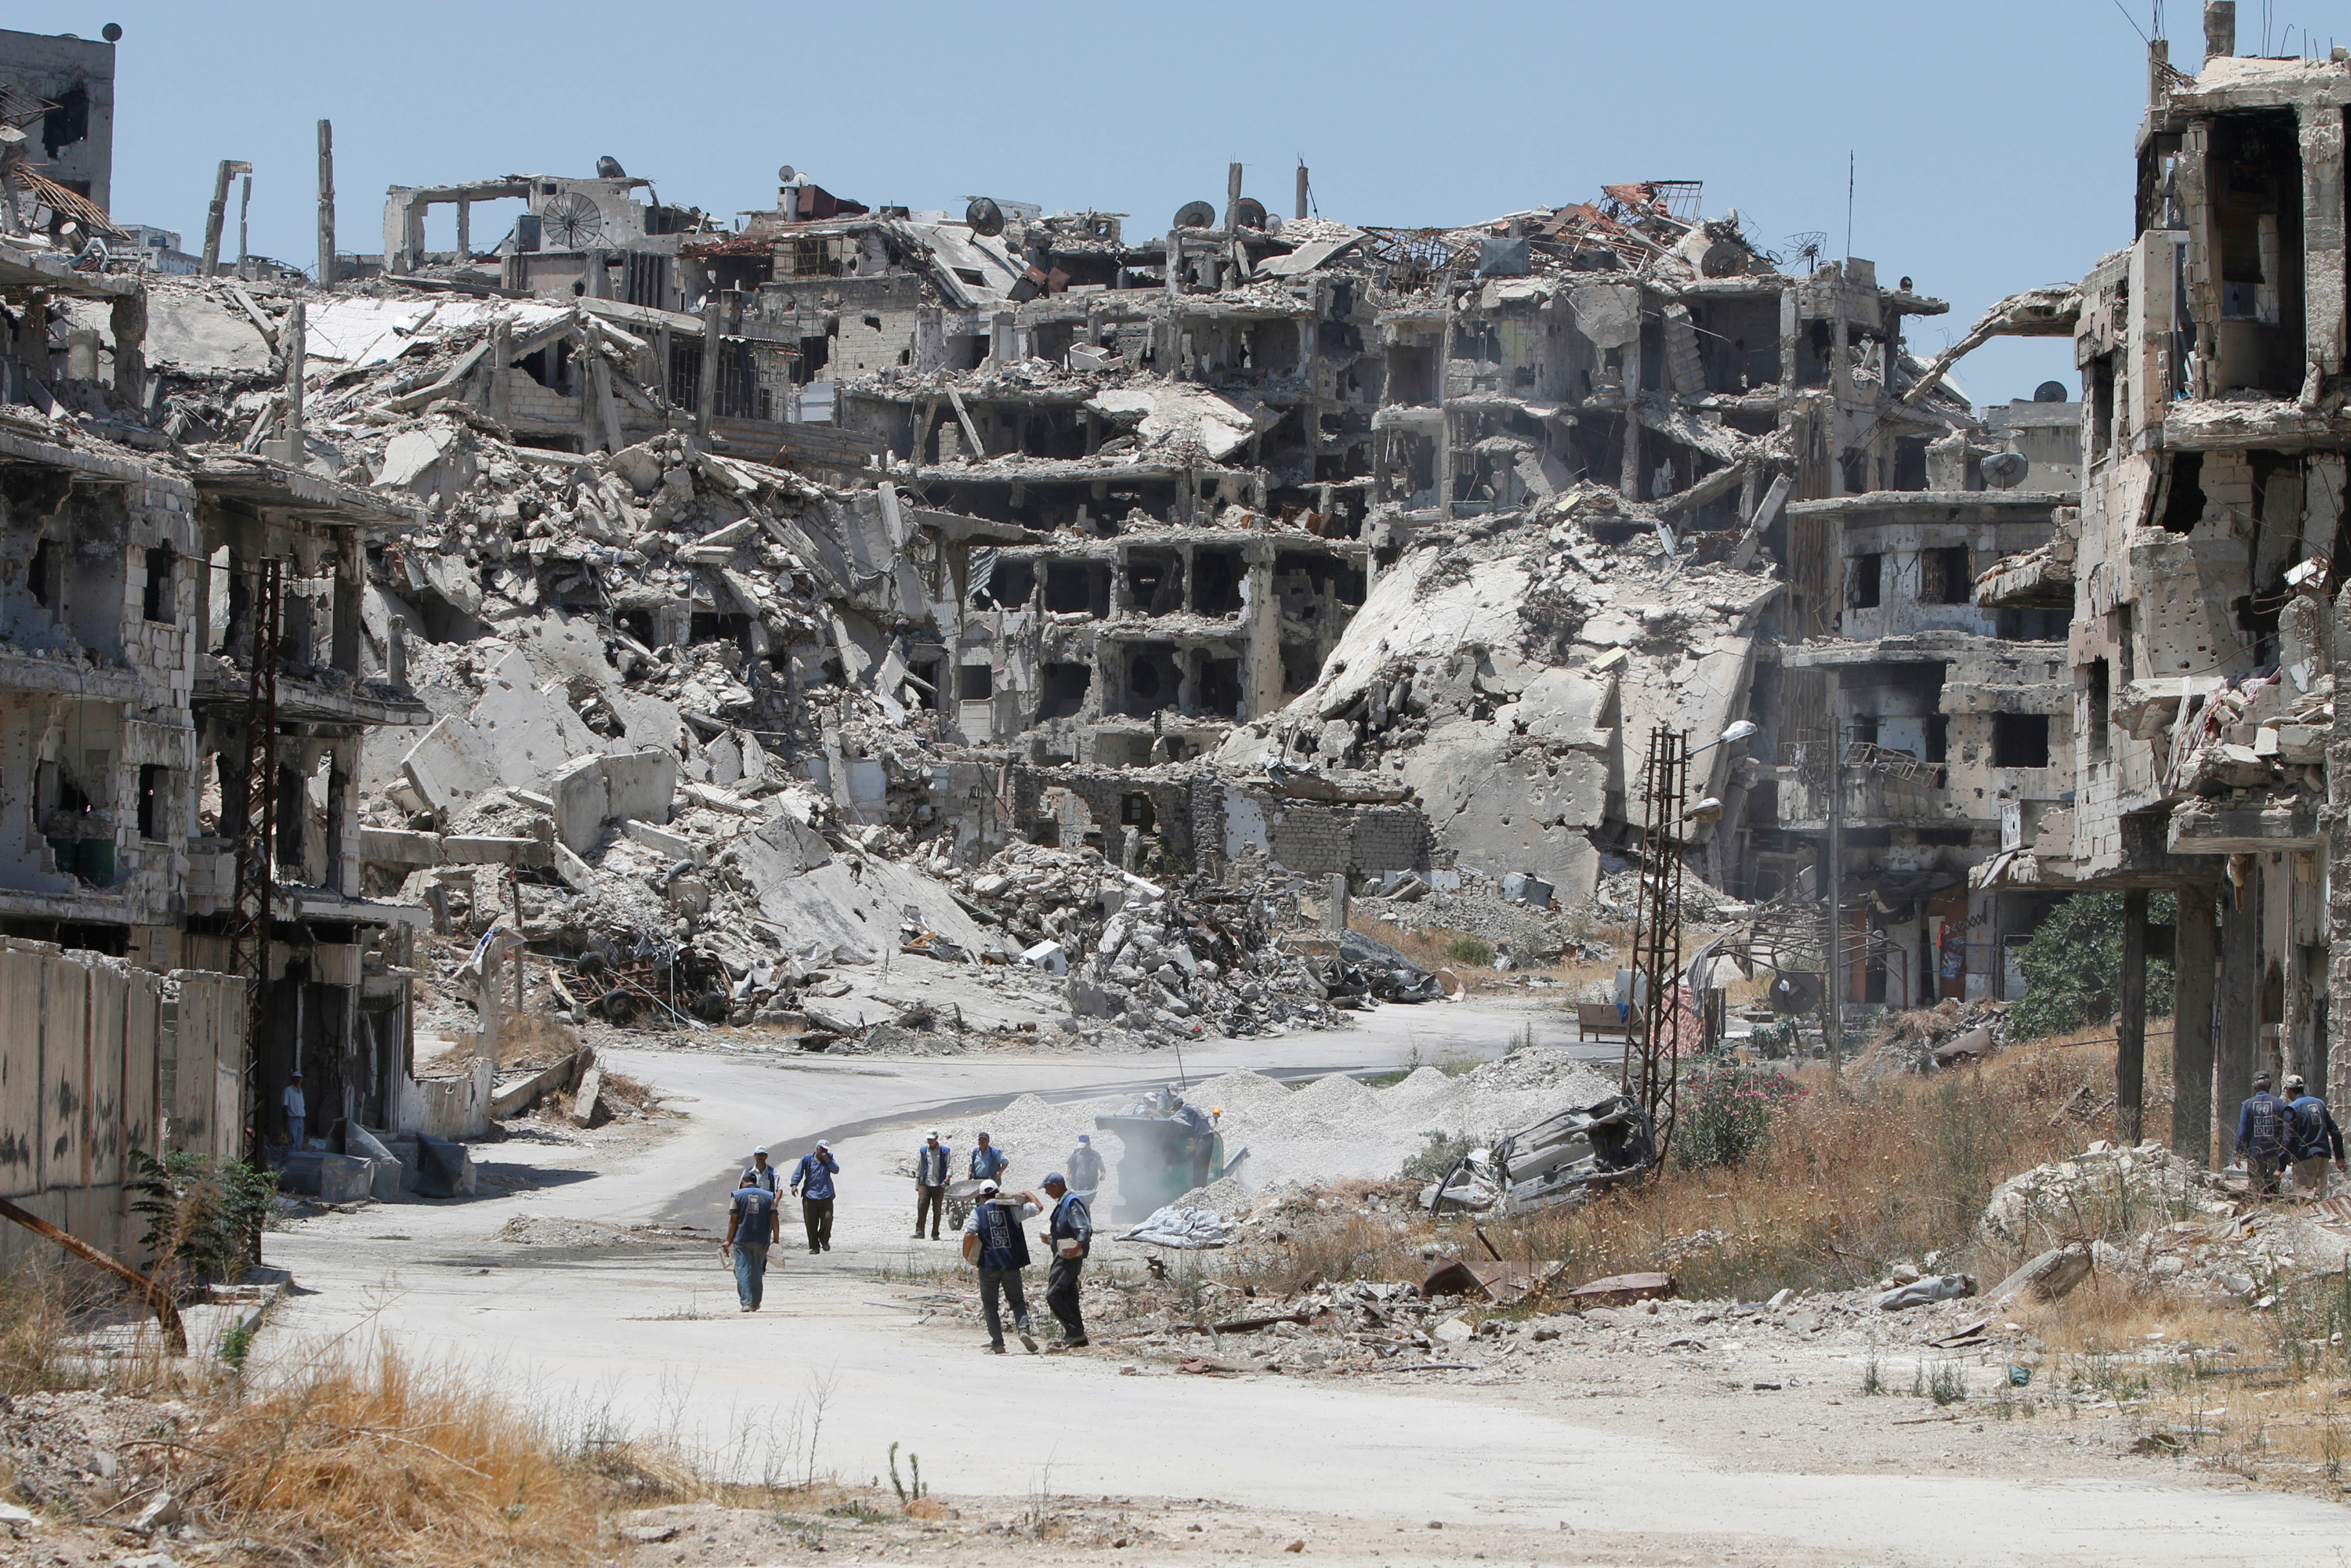 Workers collect material to be recycled and reused for reconstruction, under the supervision of the United Nations Development Programme in government-controlled Homs, Syria.